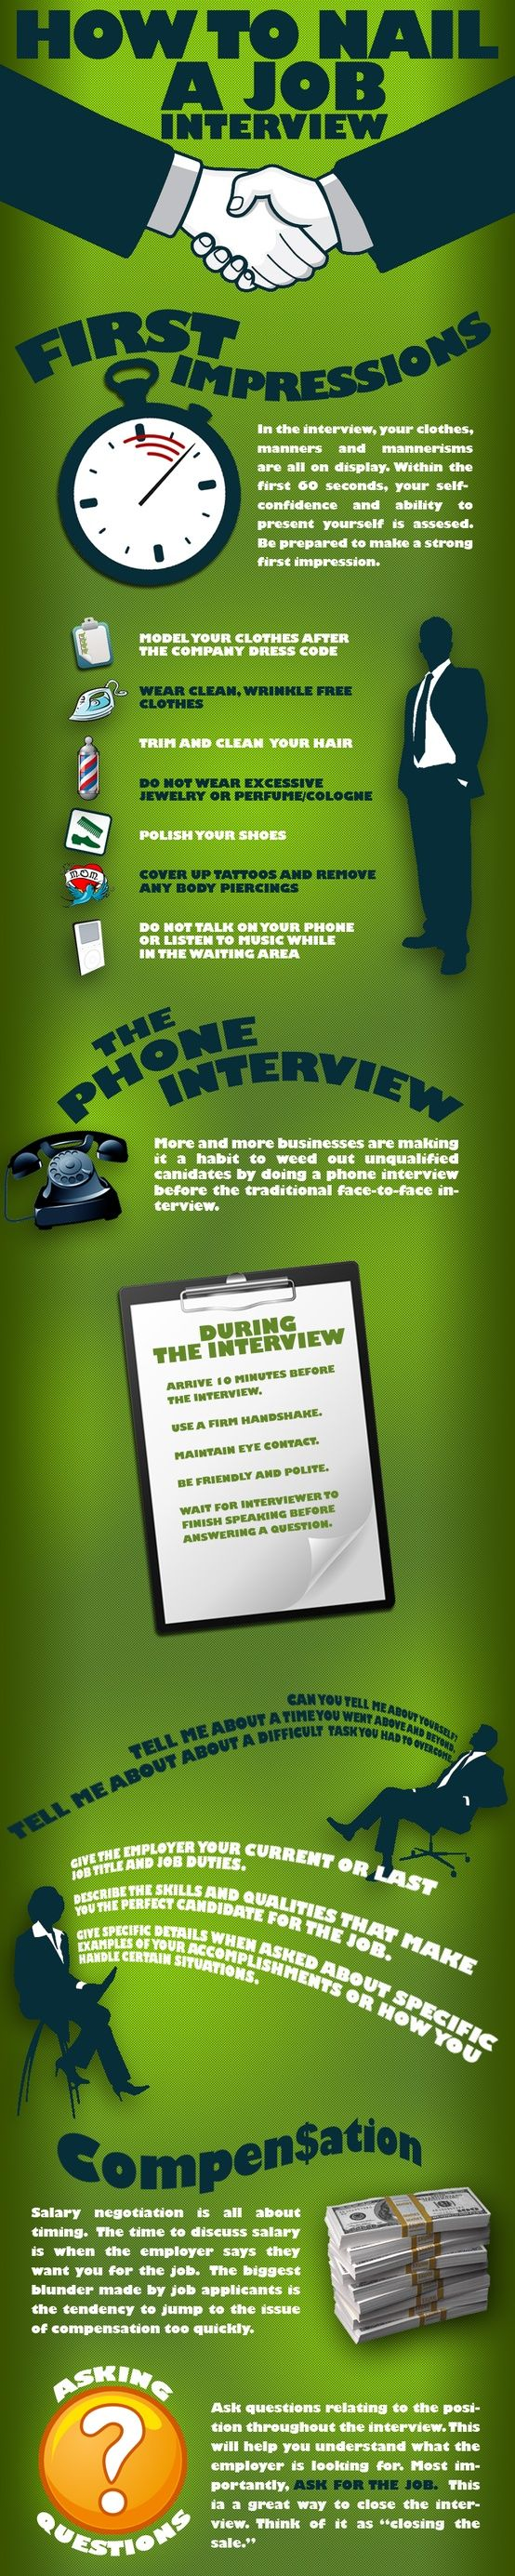 top tips for acing a job interview  infographic